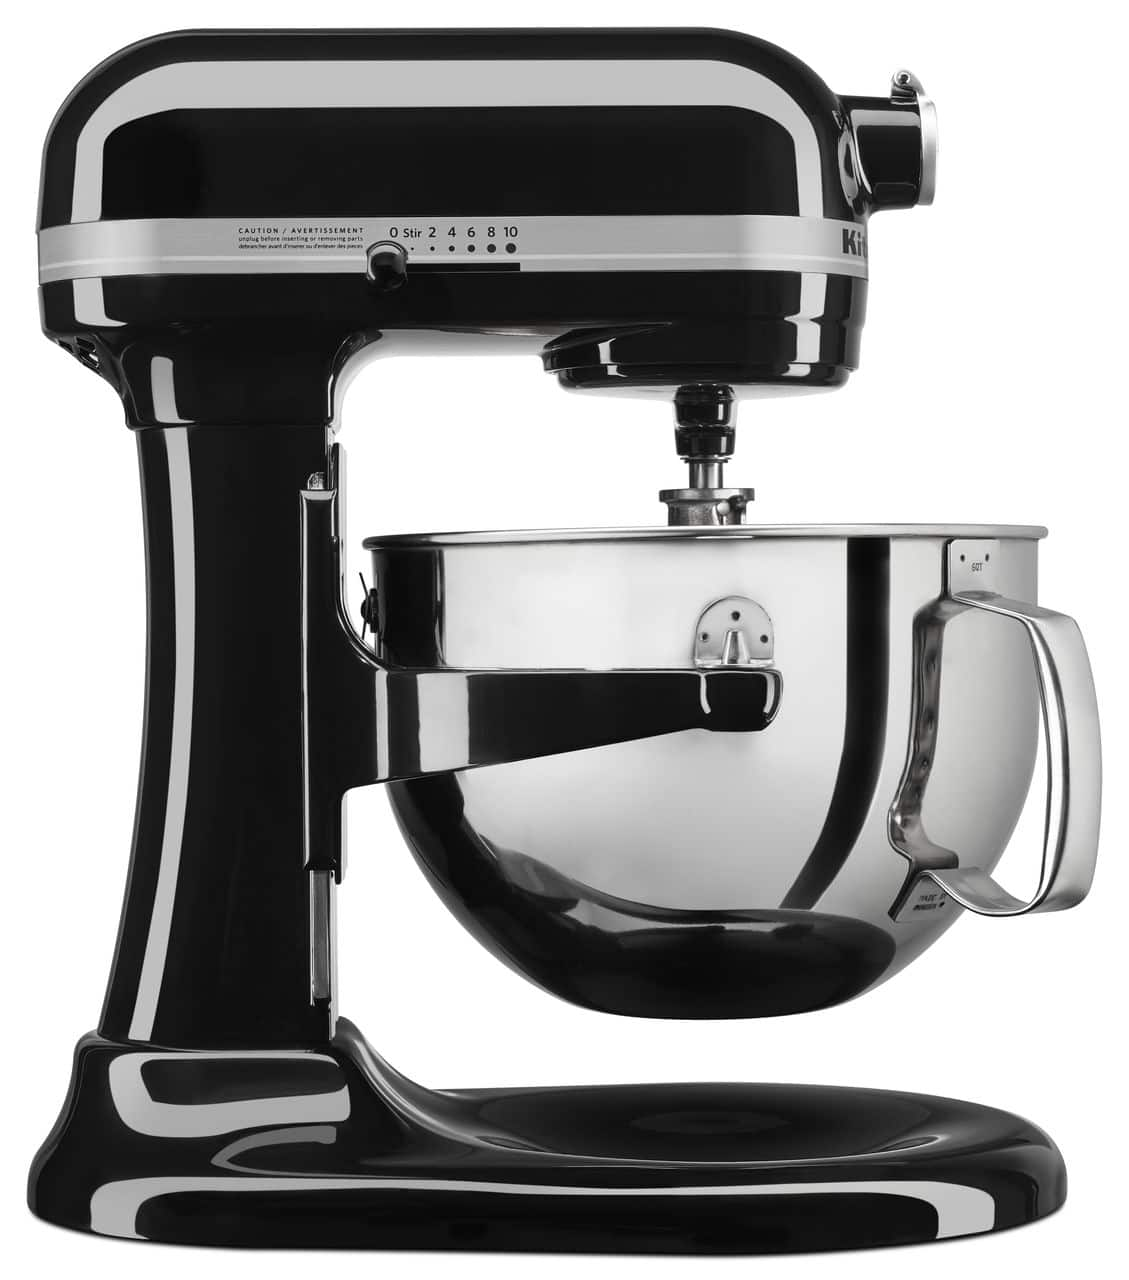 NEW KitchenAid® 6 Quart Bowl-Lift Stand Mixer, KL26M1X $249.99 $270.61